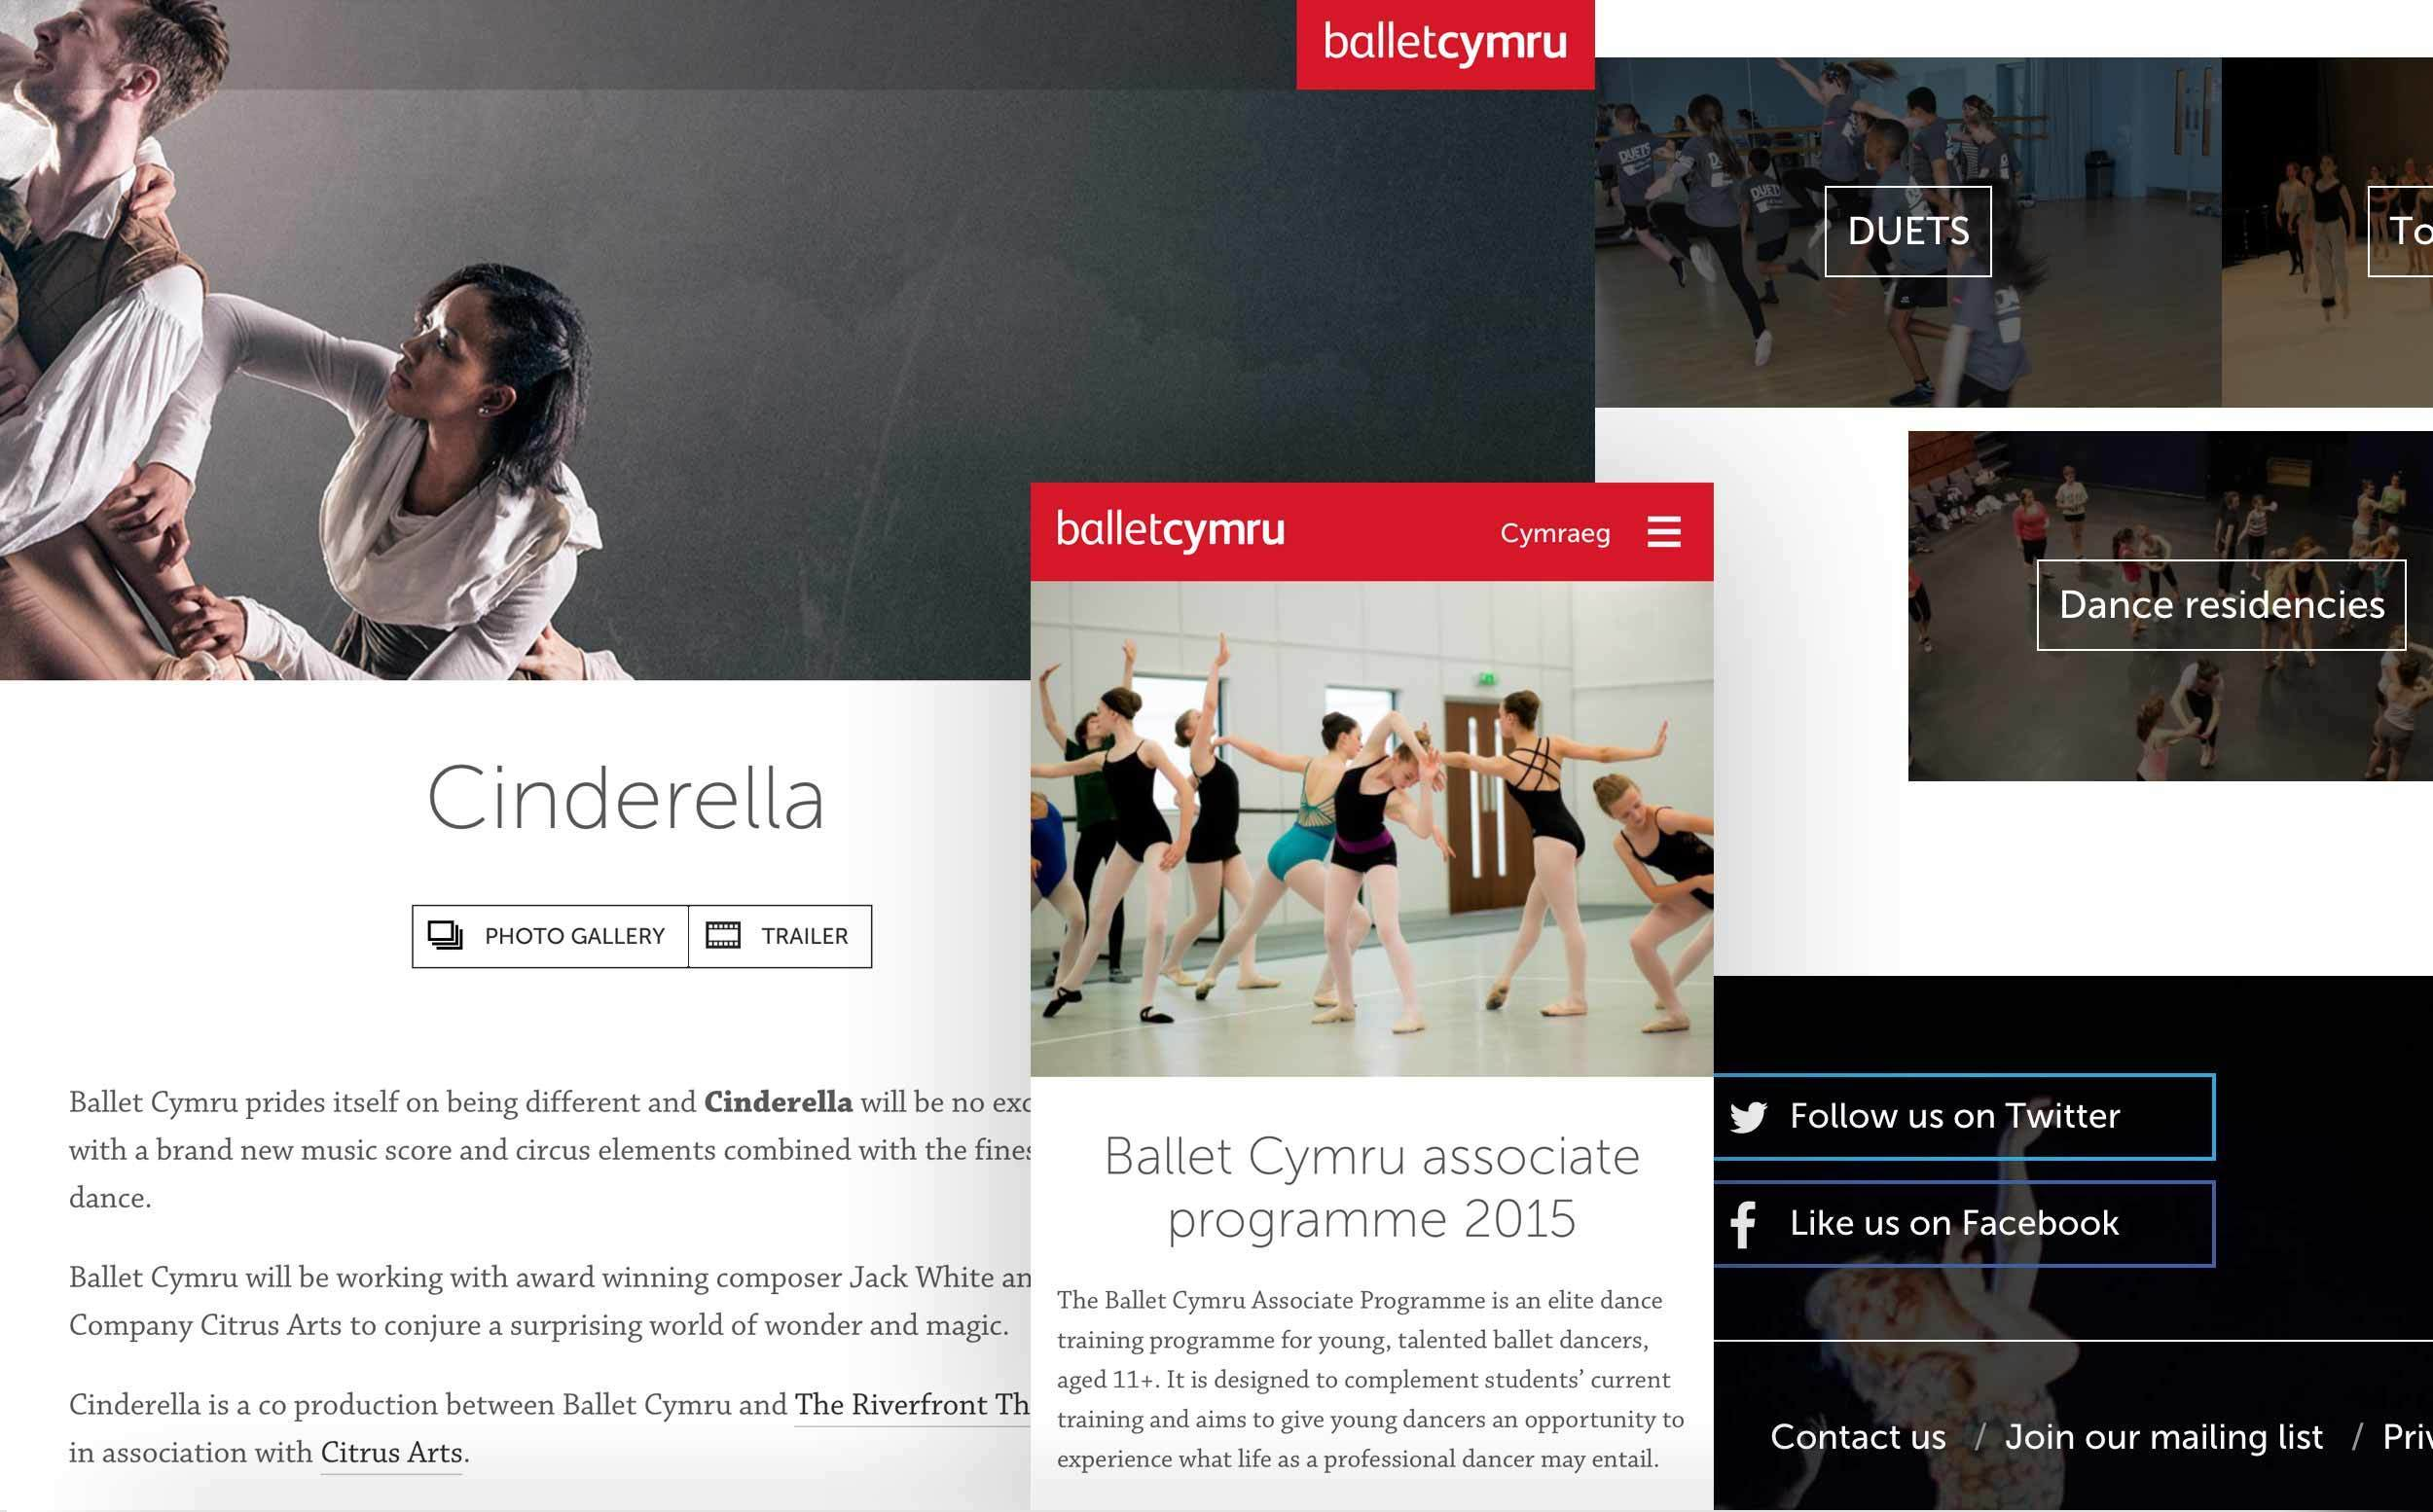 Images of the Ballet Cymru website